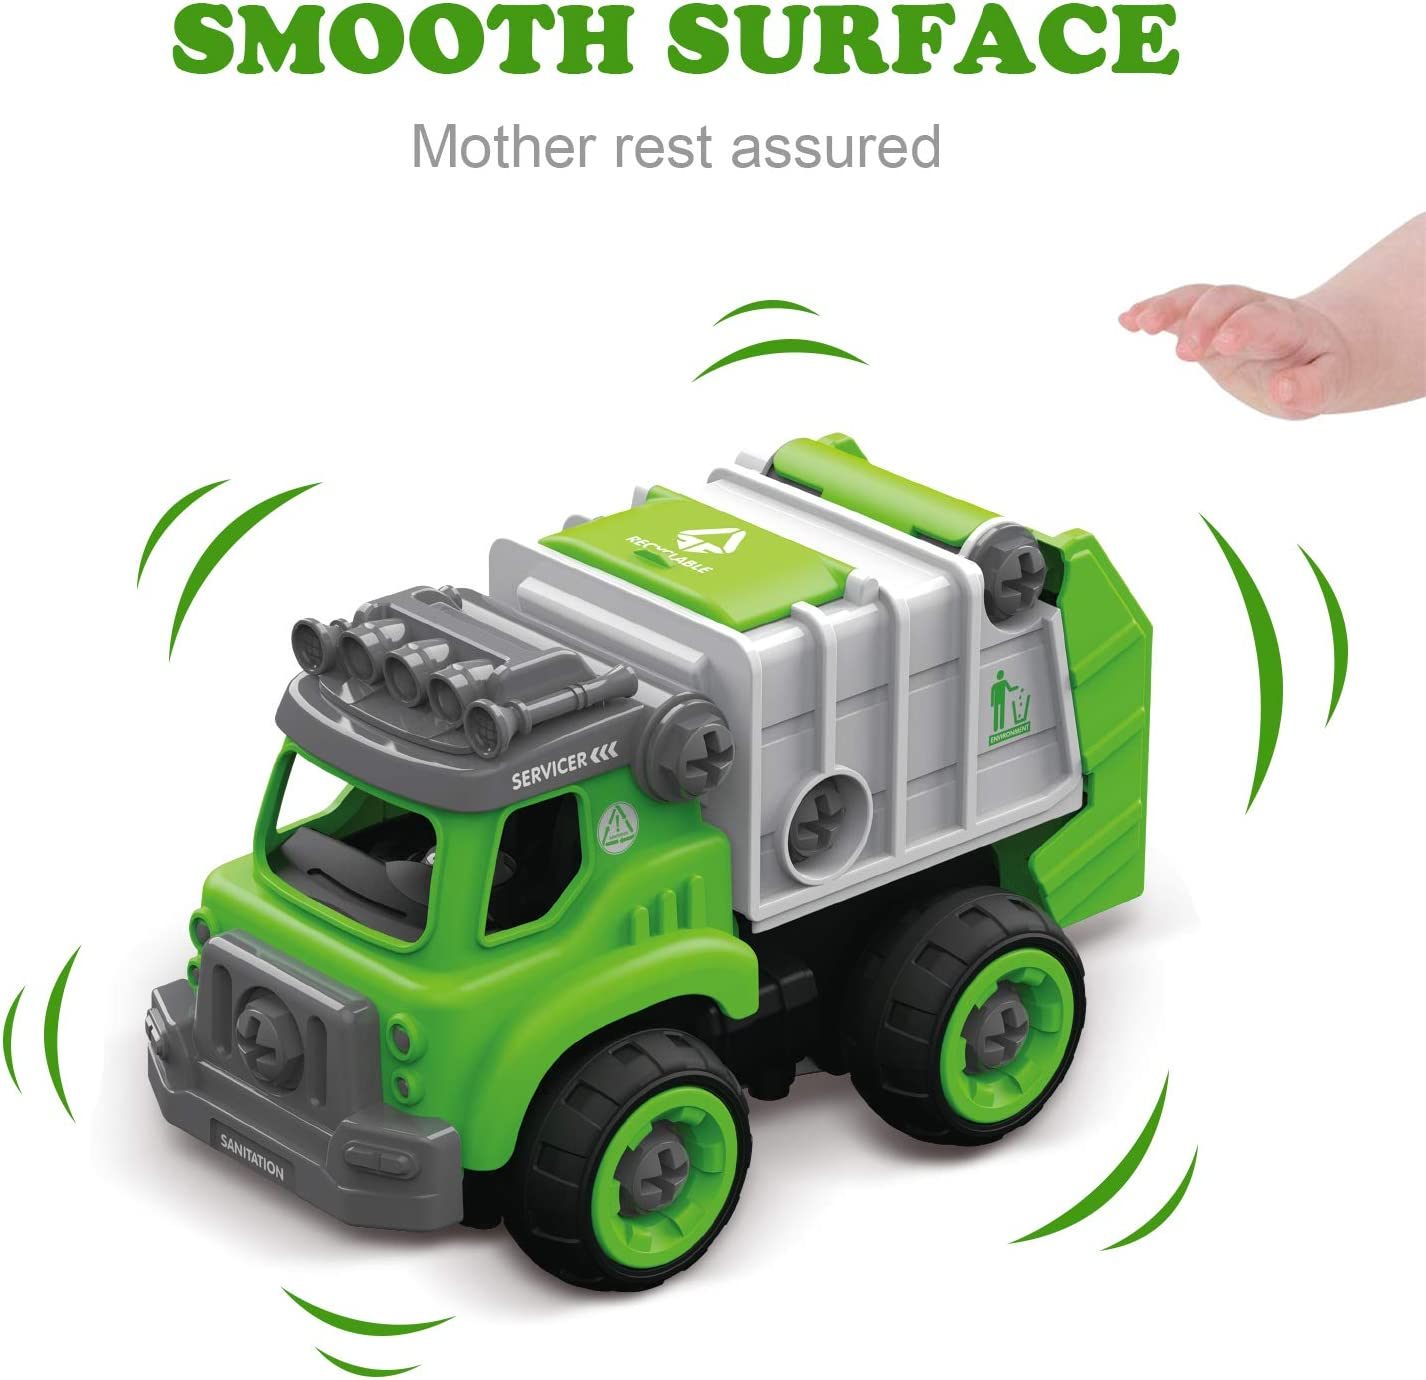 Mostop Take Apart Toys with Electric Drill 3 in 1 Remote Control Truck for Kids Building Sets Construction Truck Kit for Boys Girls Children